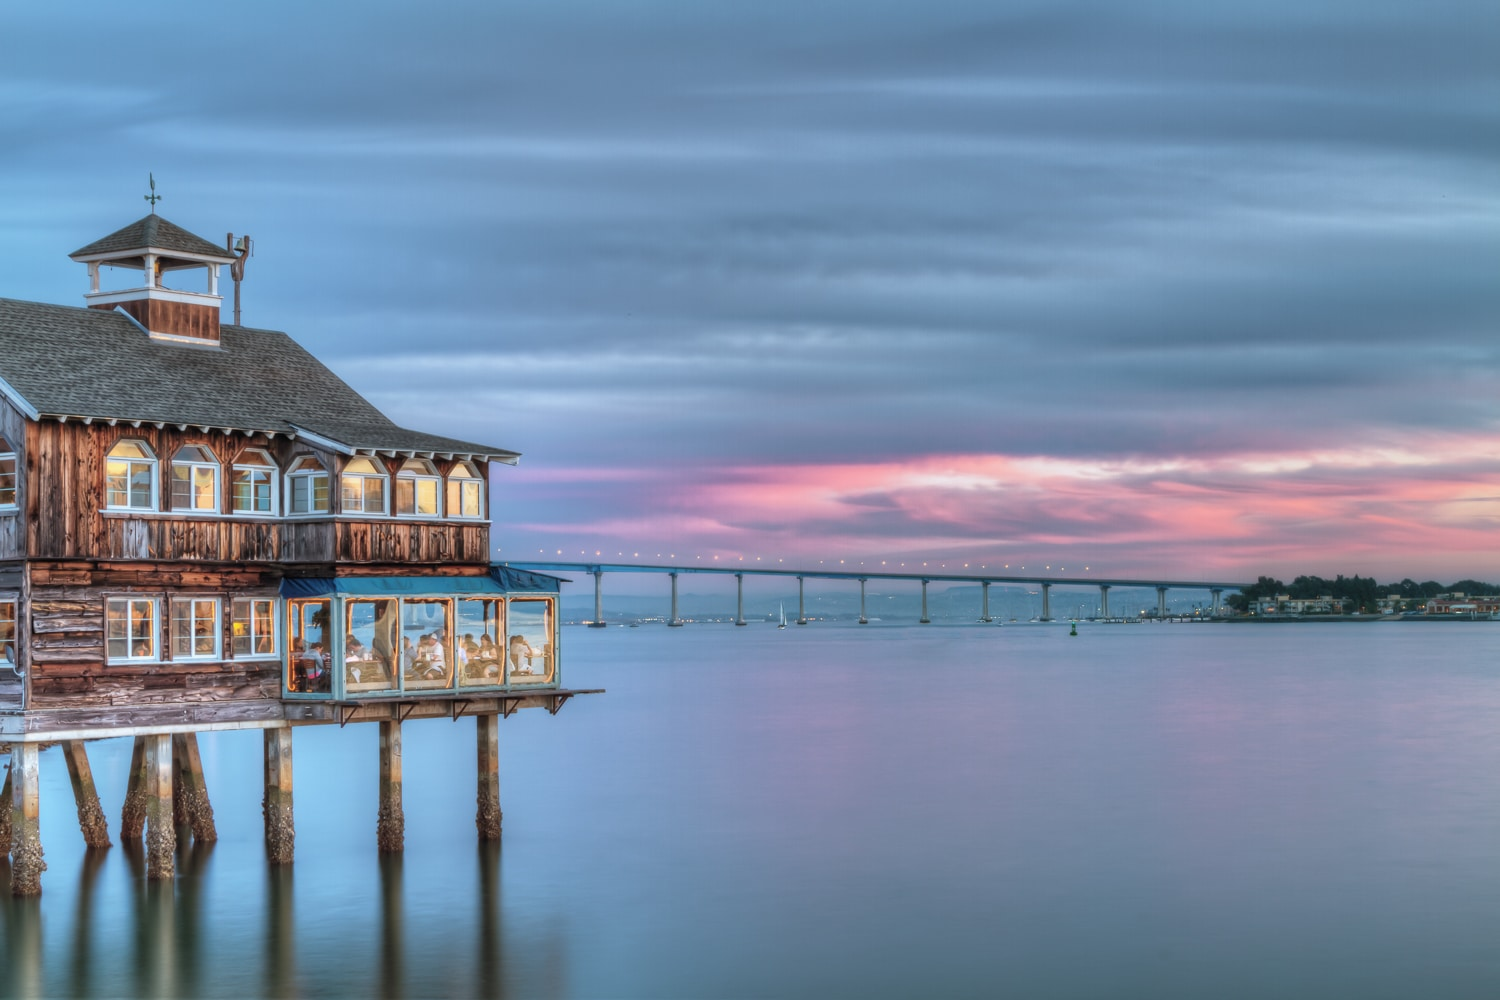 Simply Sublime | Pier Cafe and Coronado Bridge | Seaport Village | San Diego | California